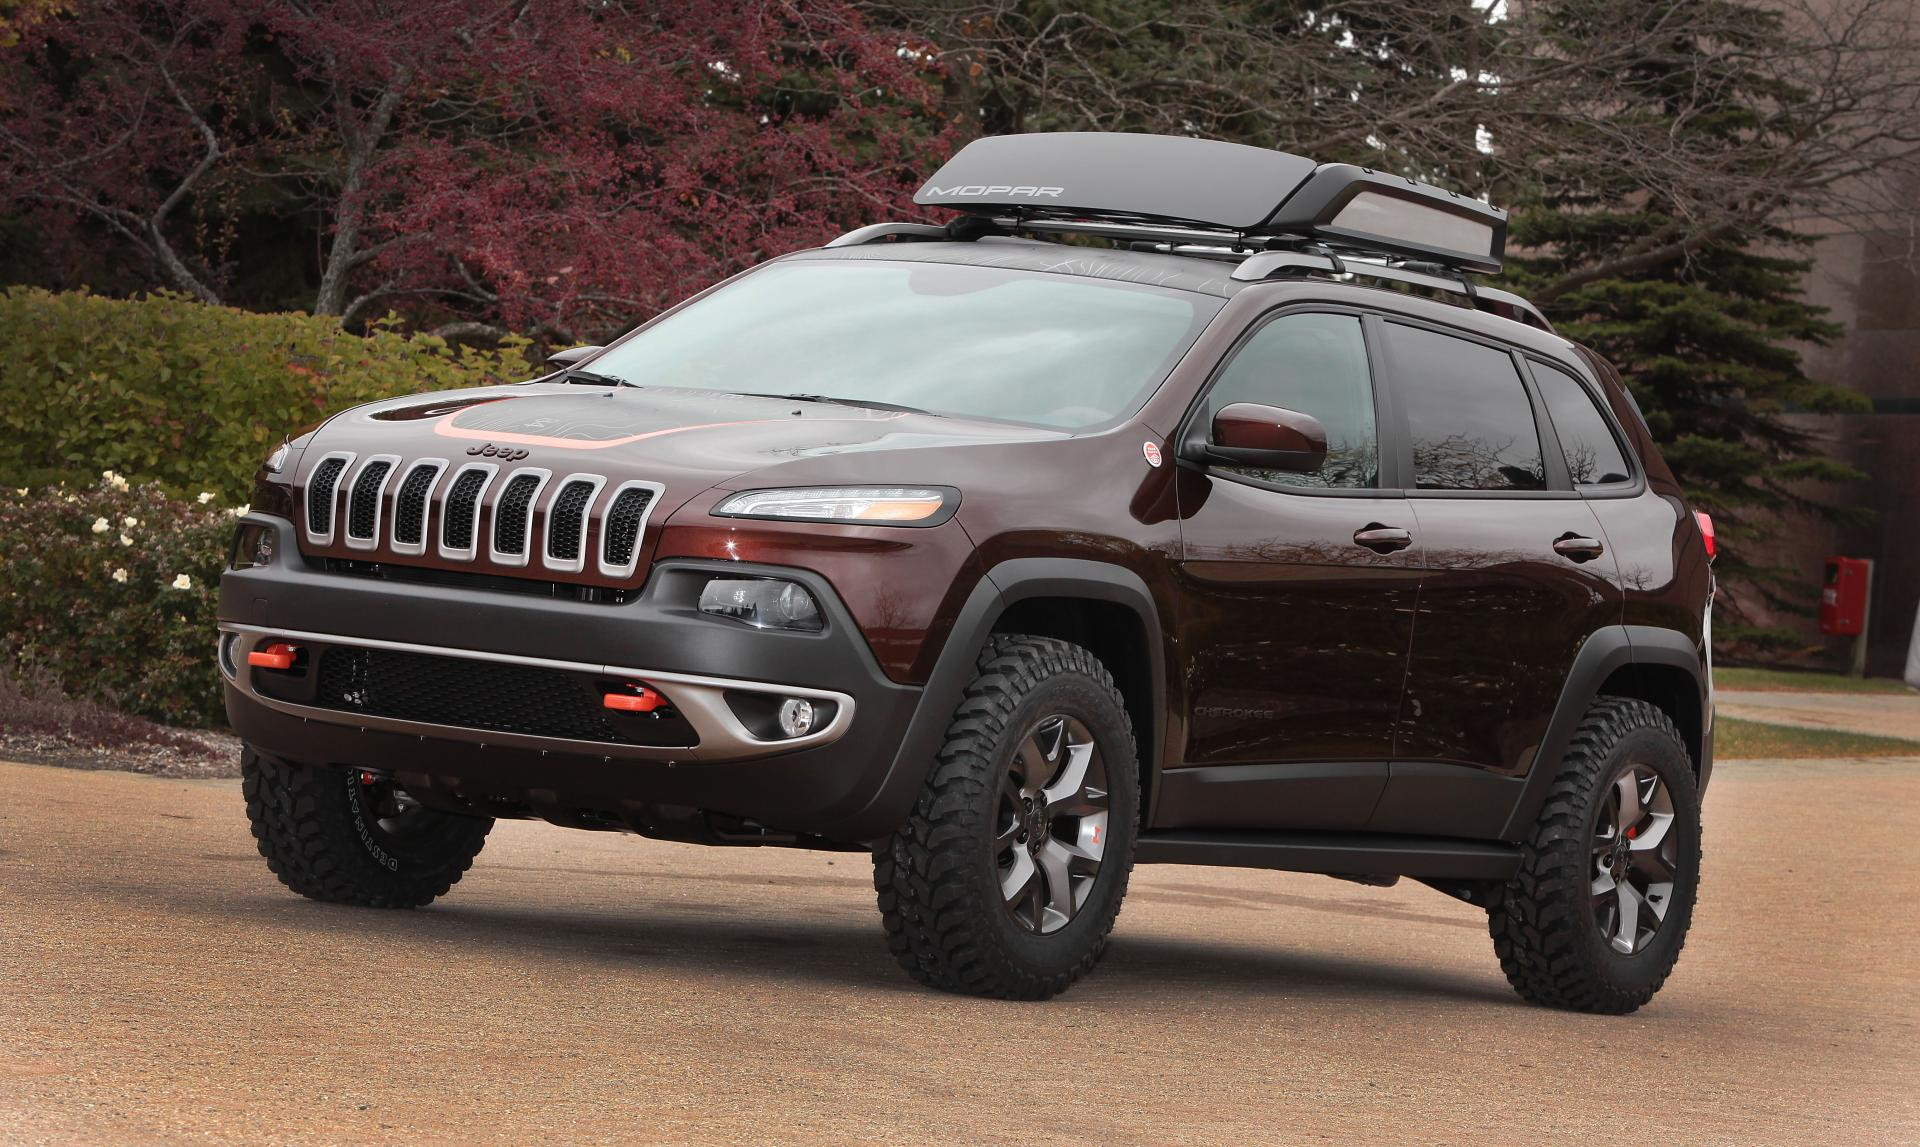 2014 jeep cherokee trail carver. Black Bedroom Furniture Sets. Home Design Ideas